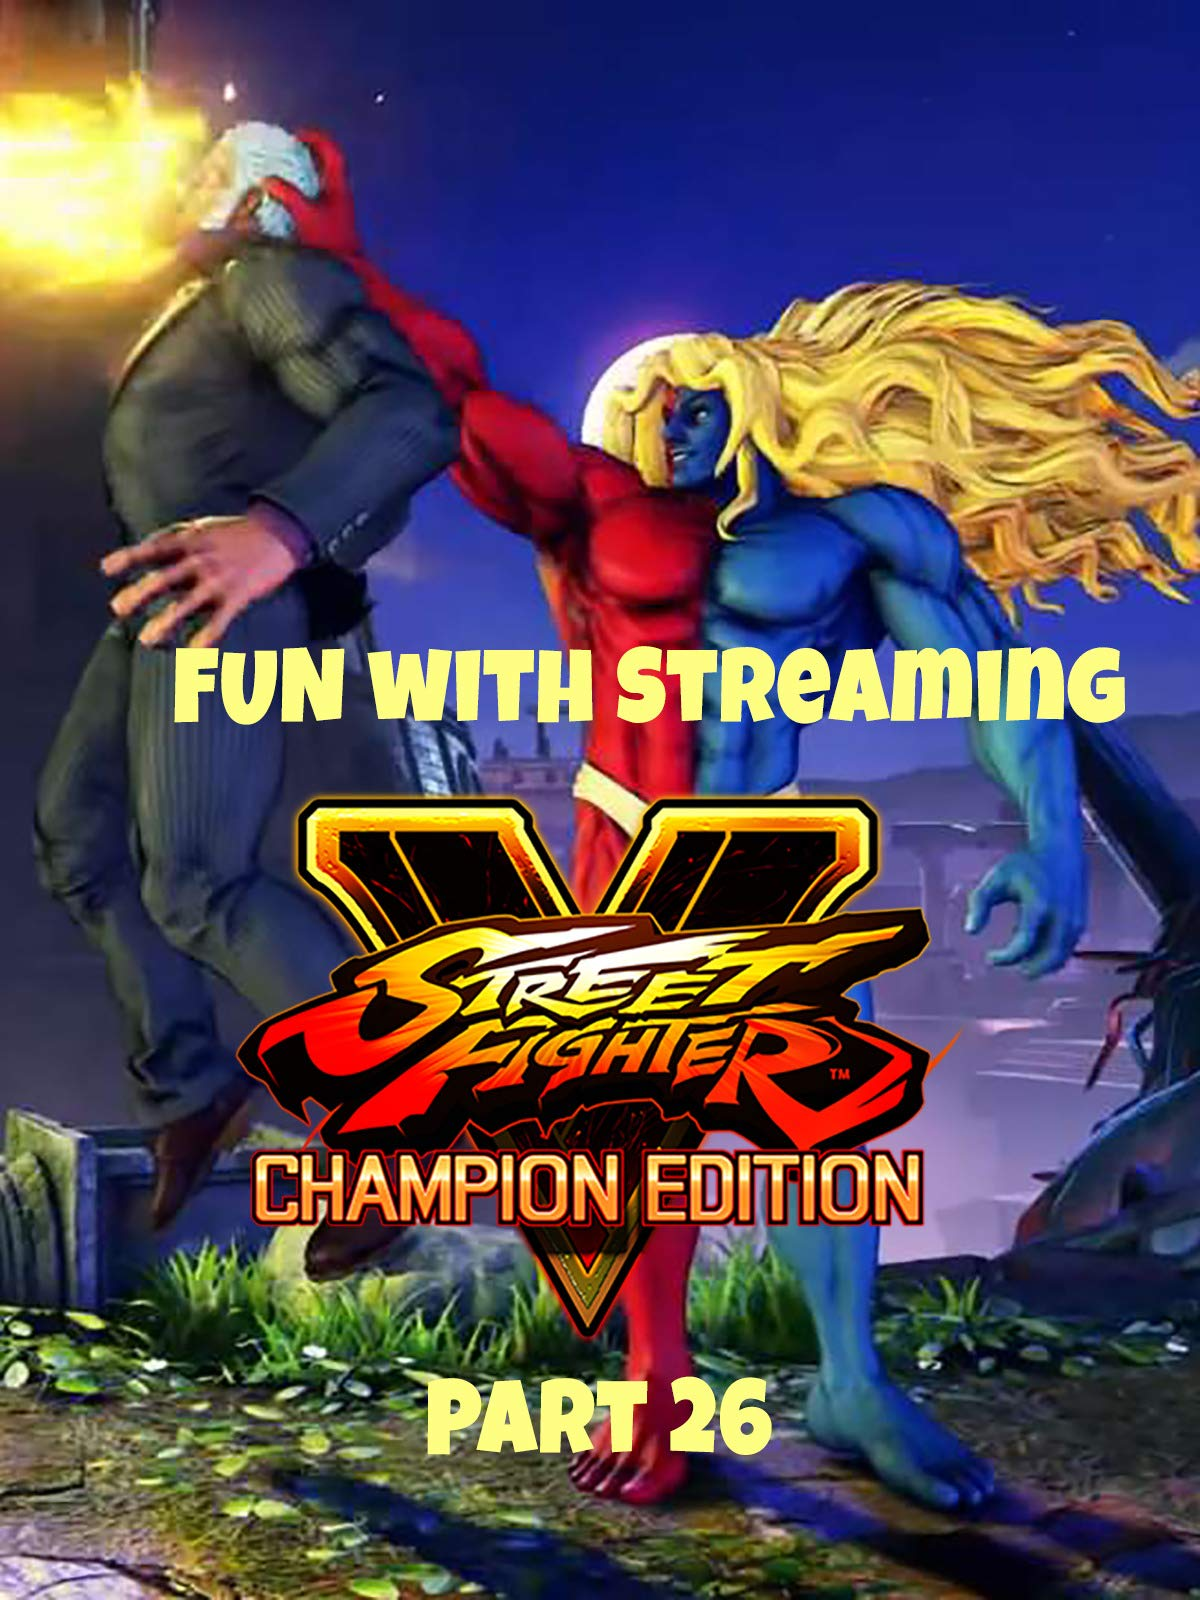 Clip: Fun with Streaming Street Fighter V Champion Edition Part 26 on Amazon Prime Video UK